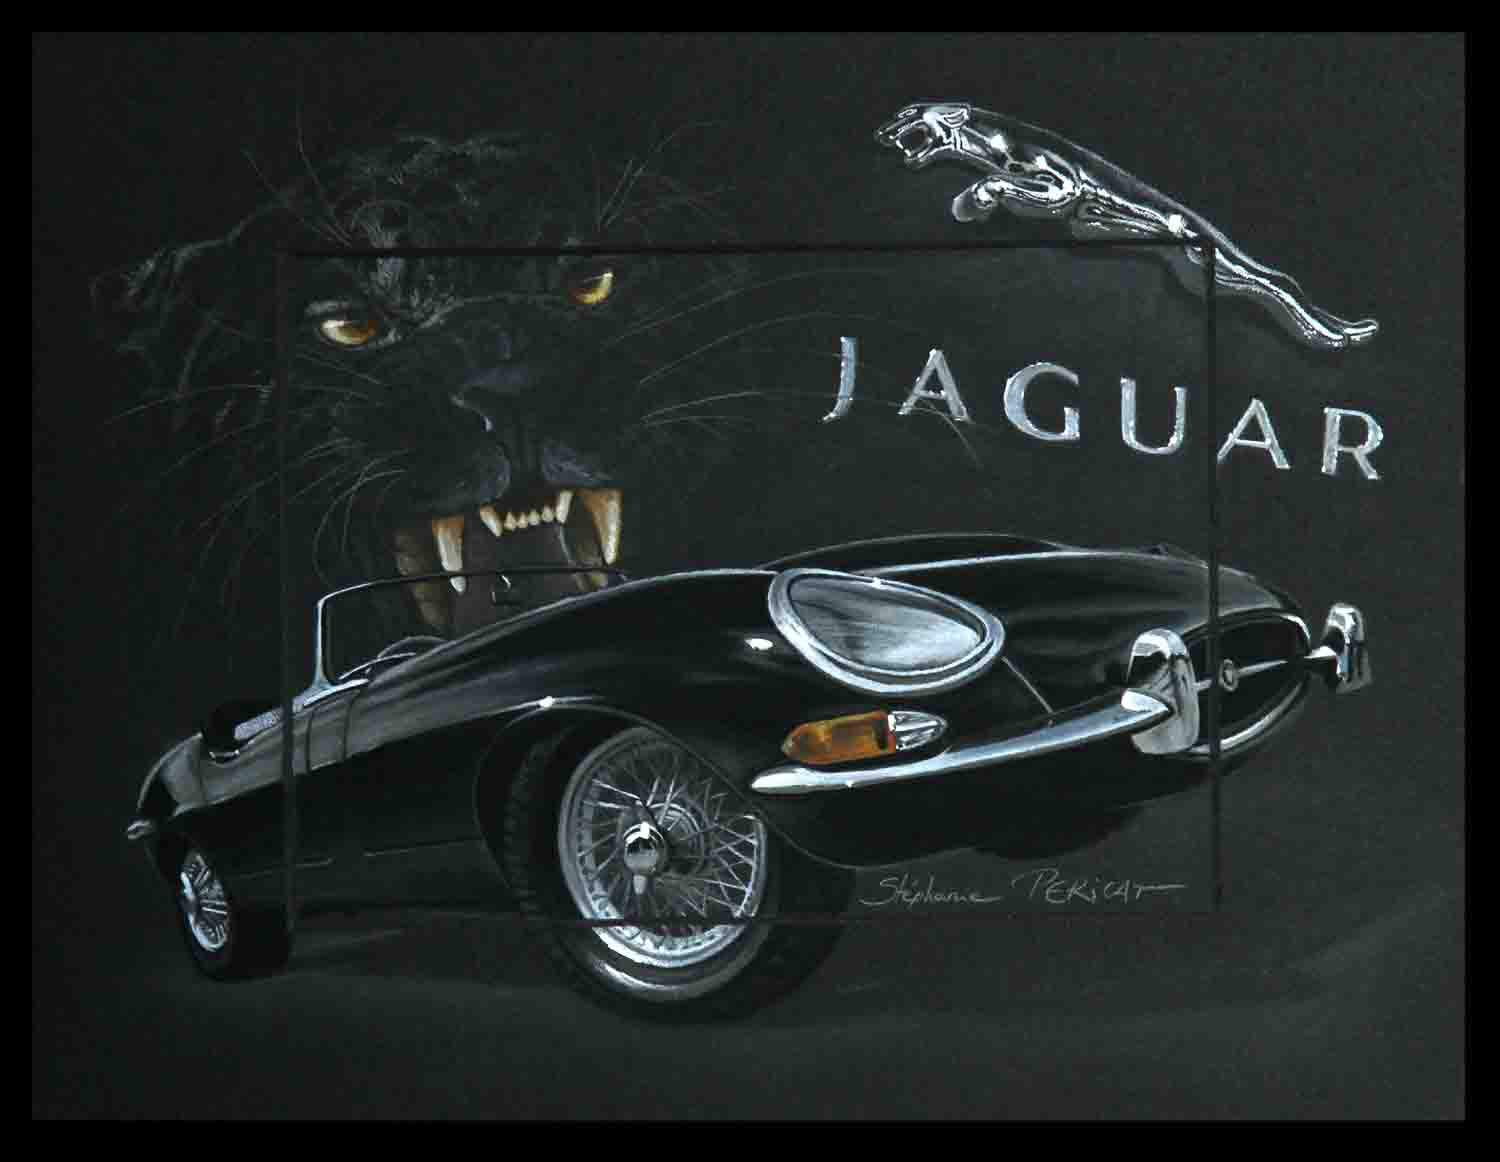 Jaguar Type E (jaguar E-type) - pastel sec (soft pastel) - 24x30cm - Av for sale